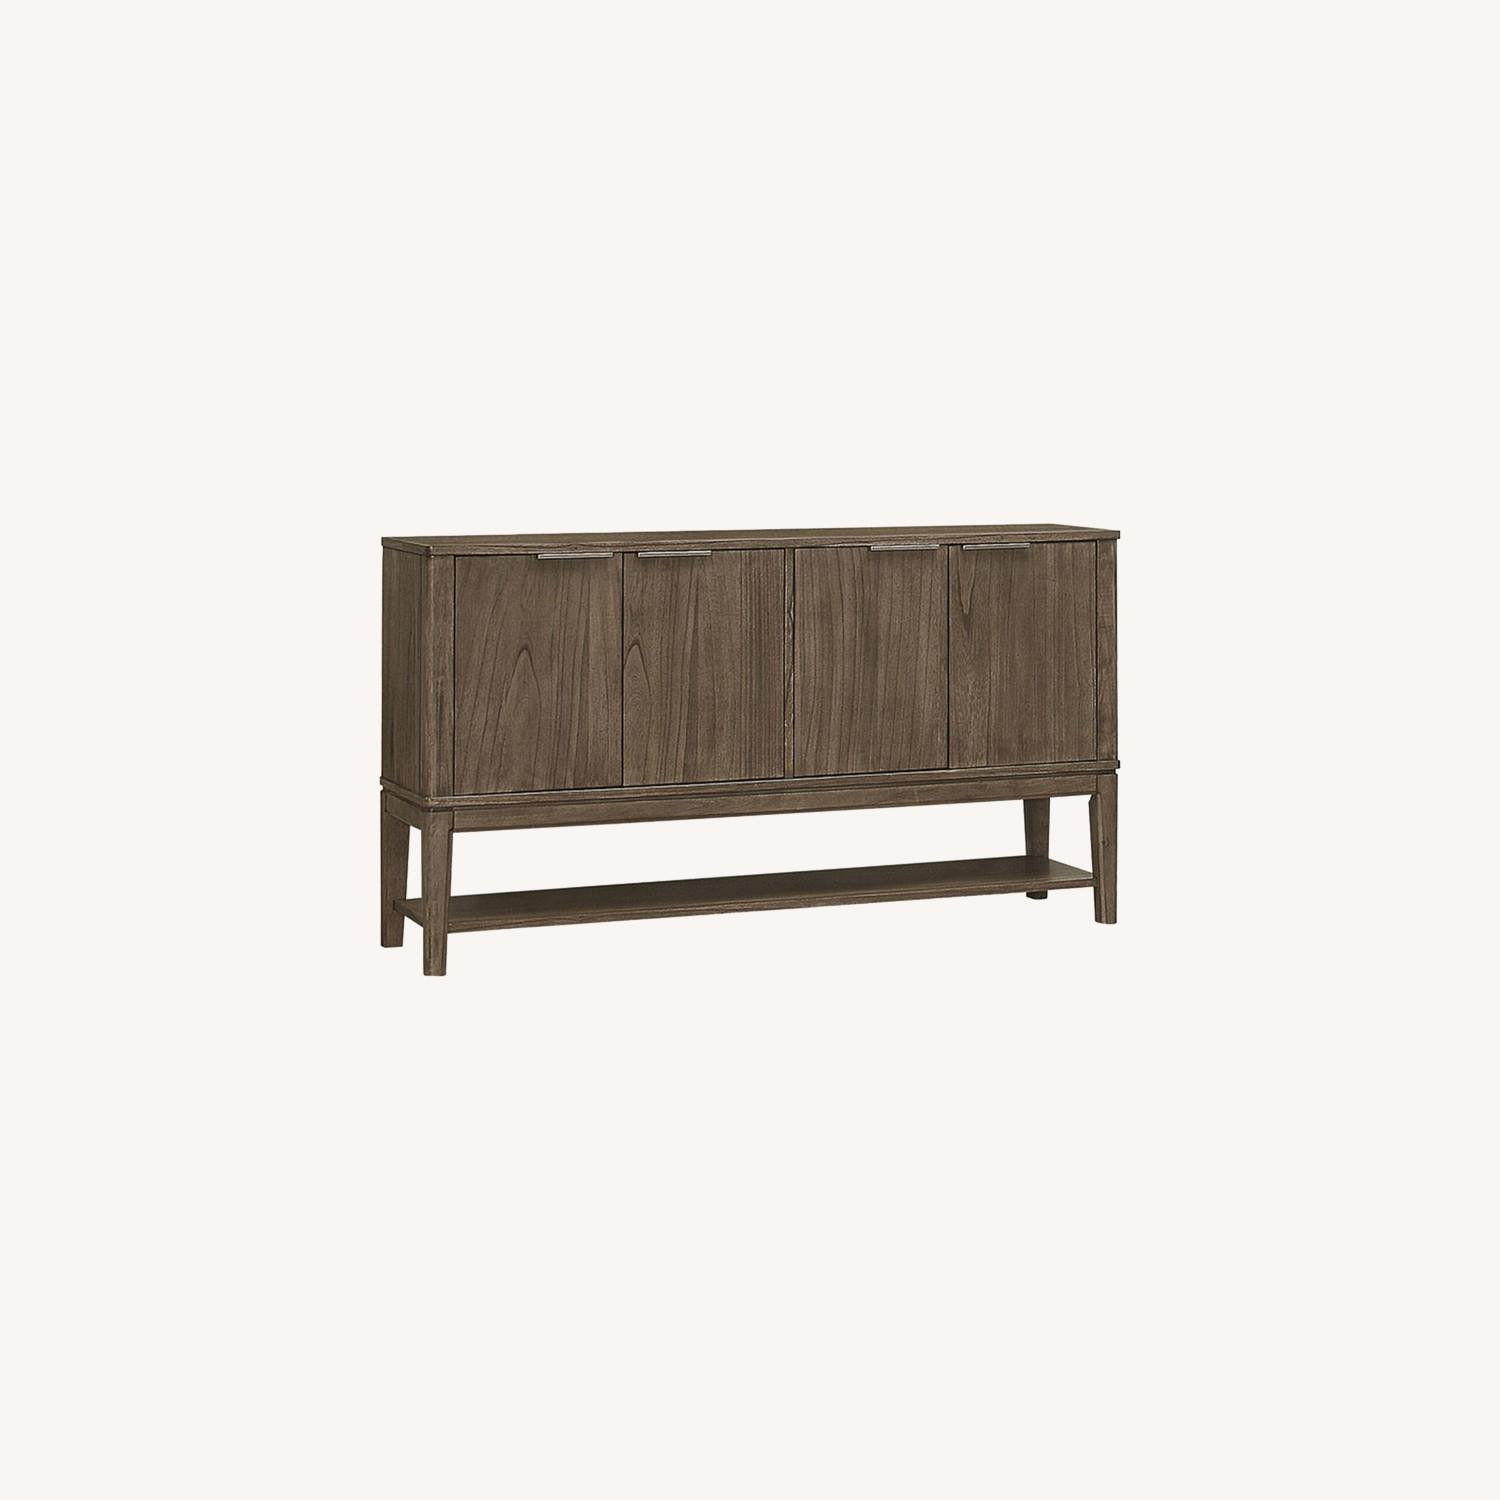 Contemporary Server In Wheat Brown Solid Hardwood - image-4